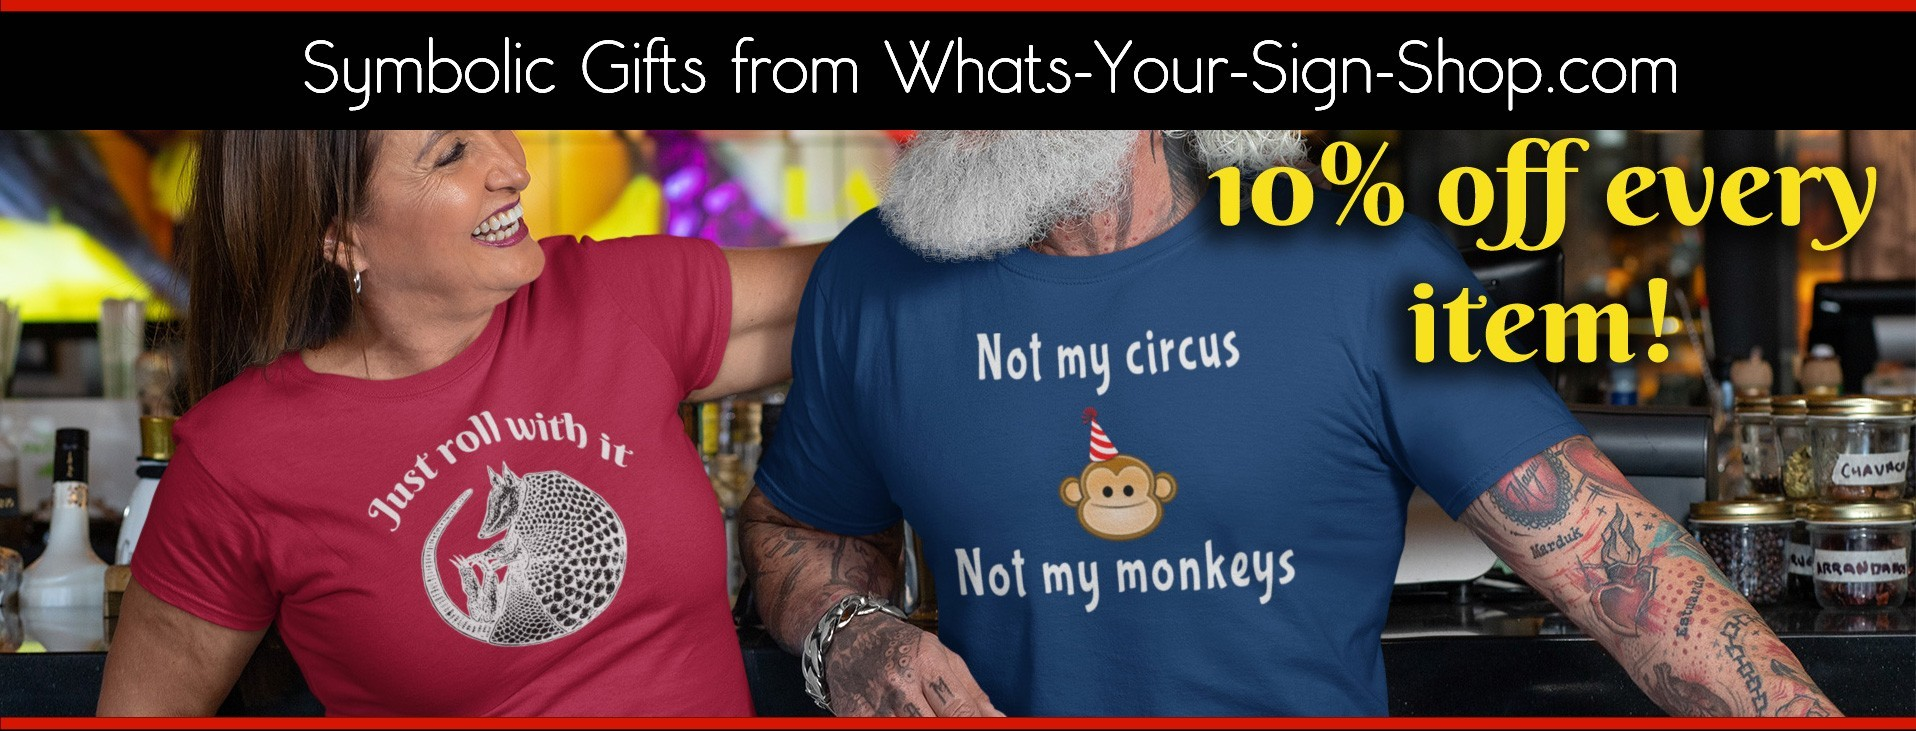 Whats-Your-Sign-Shop: Meaningful and Symbolic Gifts for Your Style